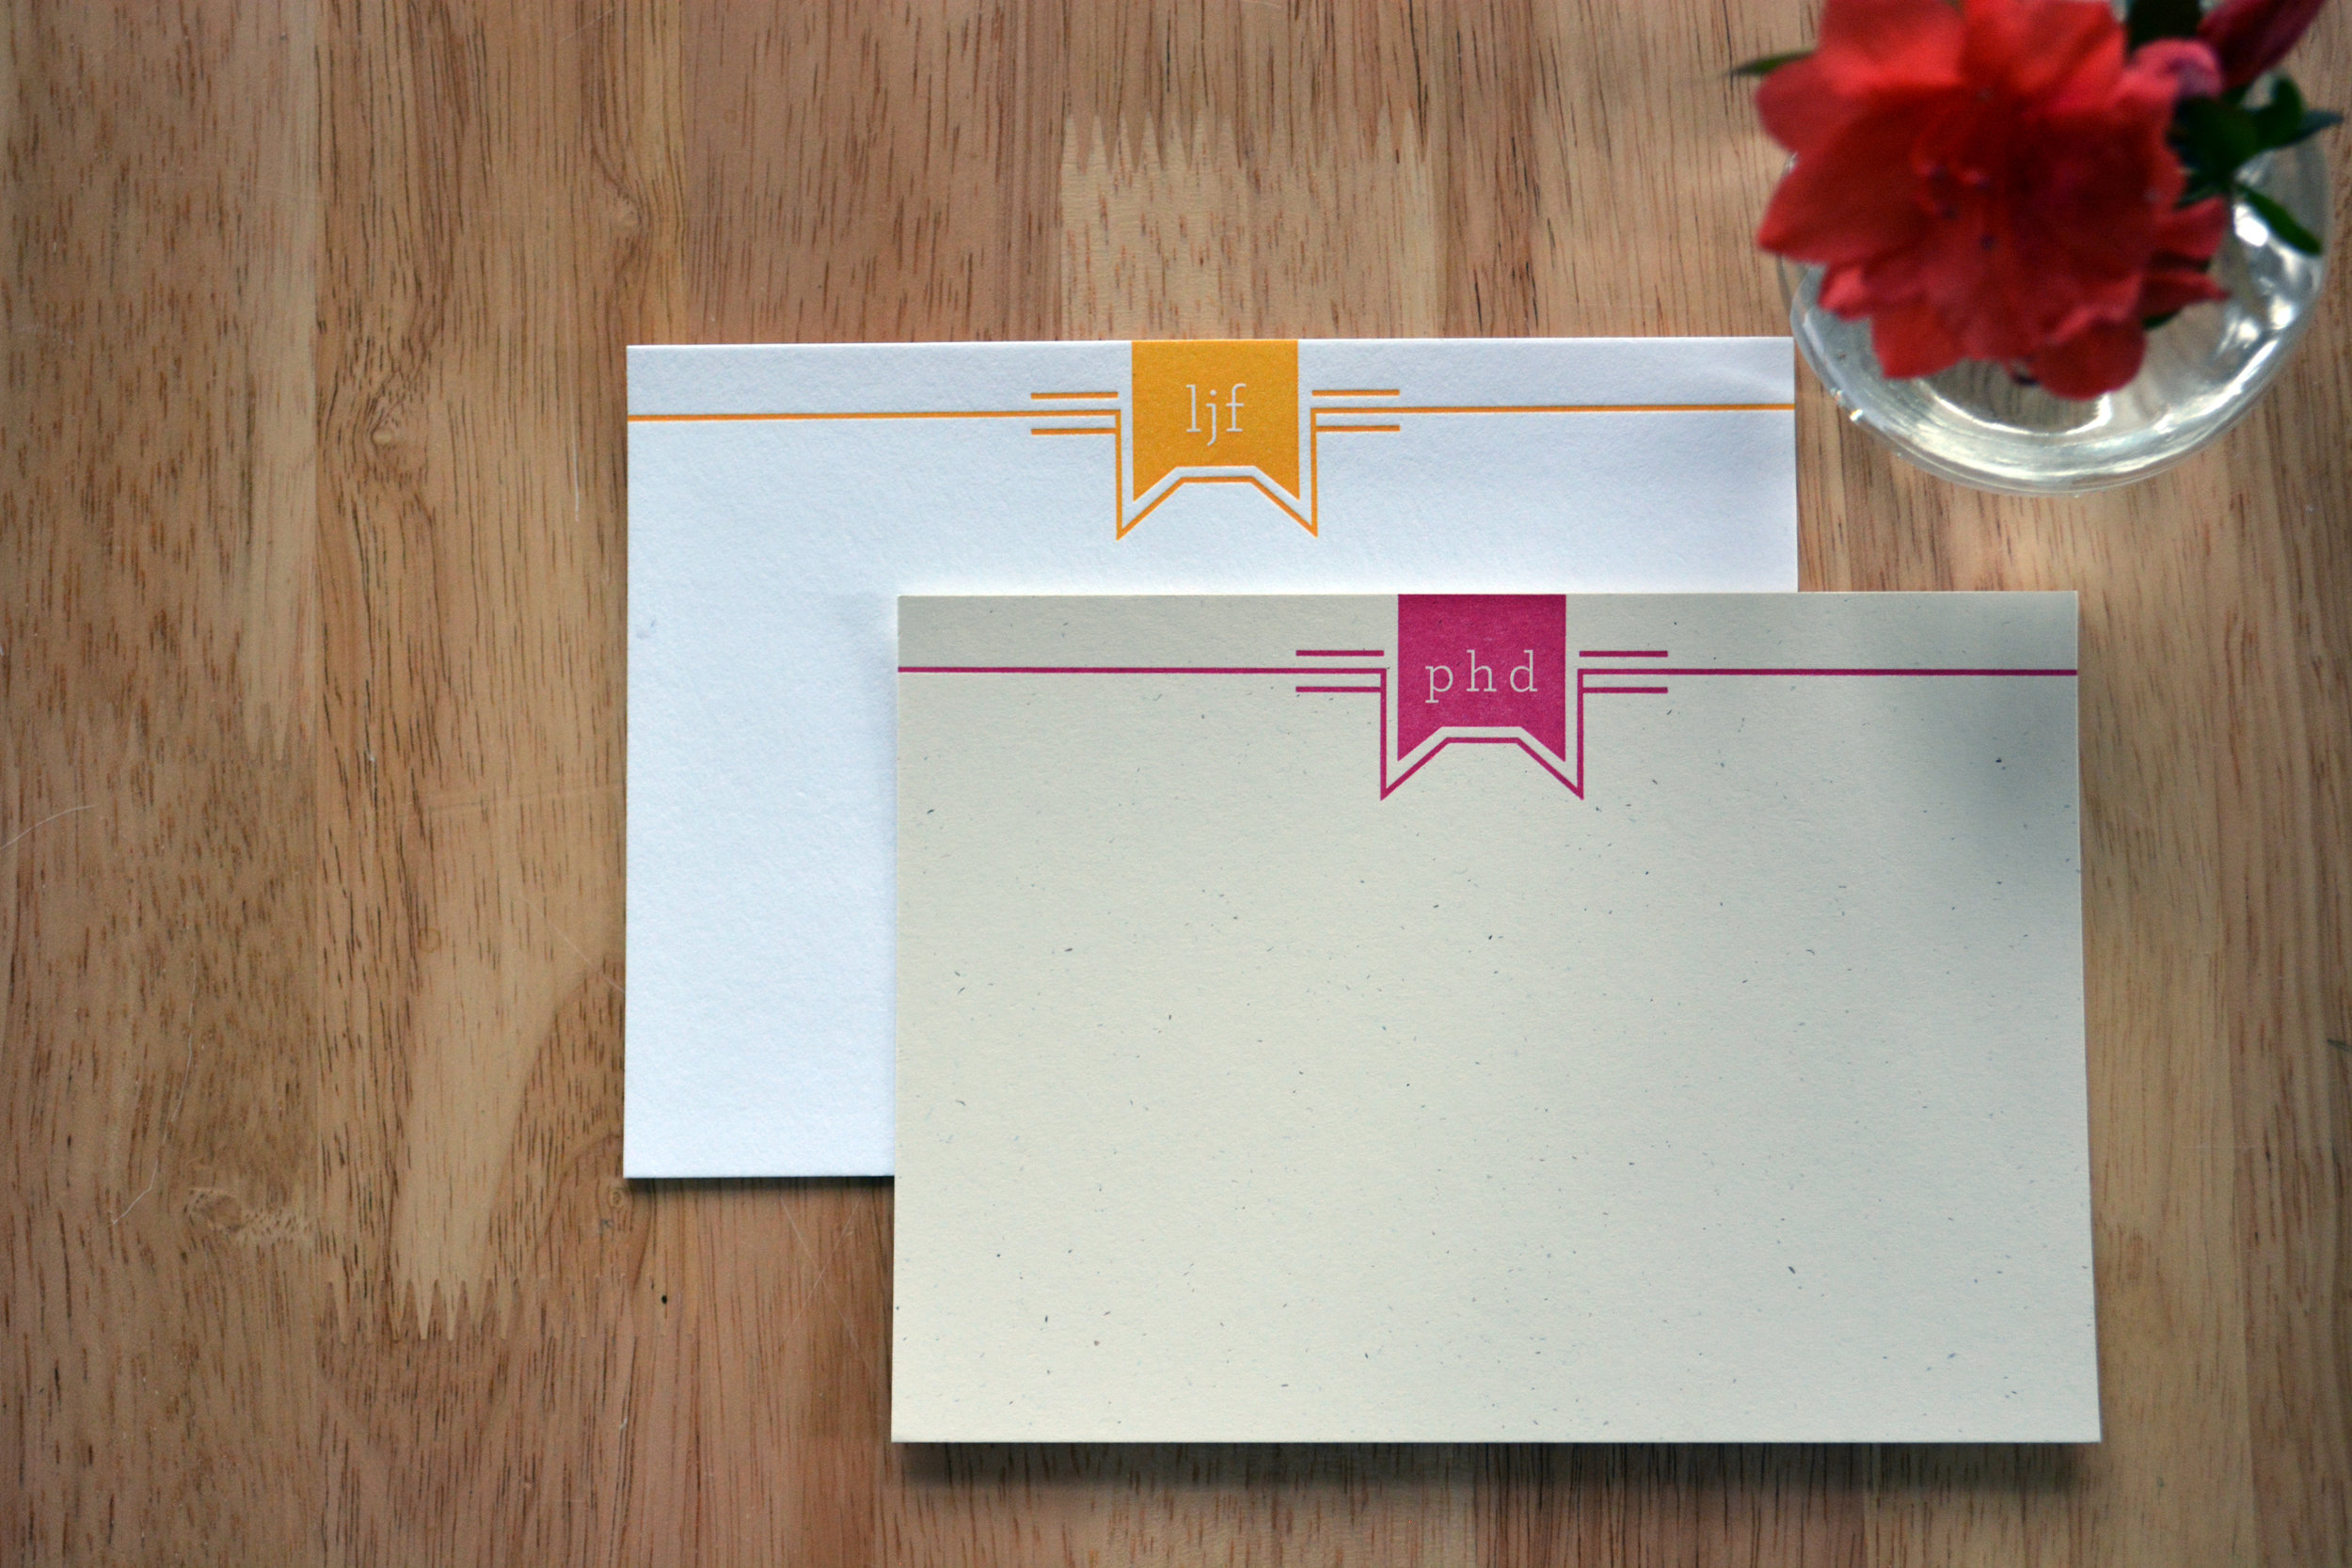 Cat Theme correspondence stationery, letterpress printed with custom colors and easily personalized initials; shown in marigold and fuschia on Crane's Lettra 110# Cover in Flourescent White and French Paper Co. 80# Text in Madero Beach